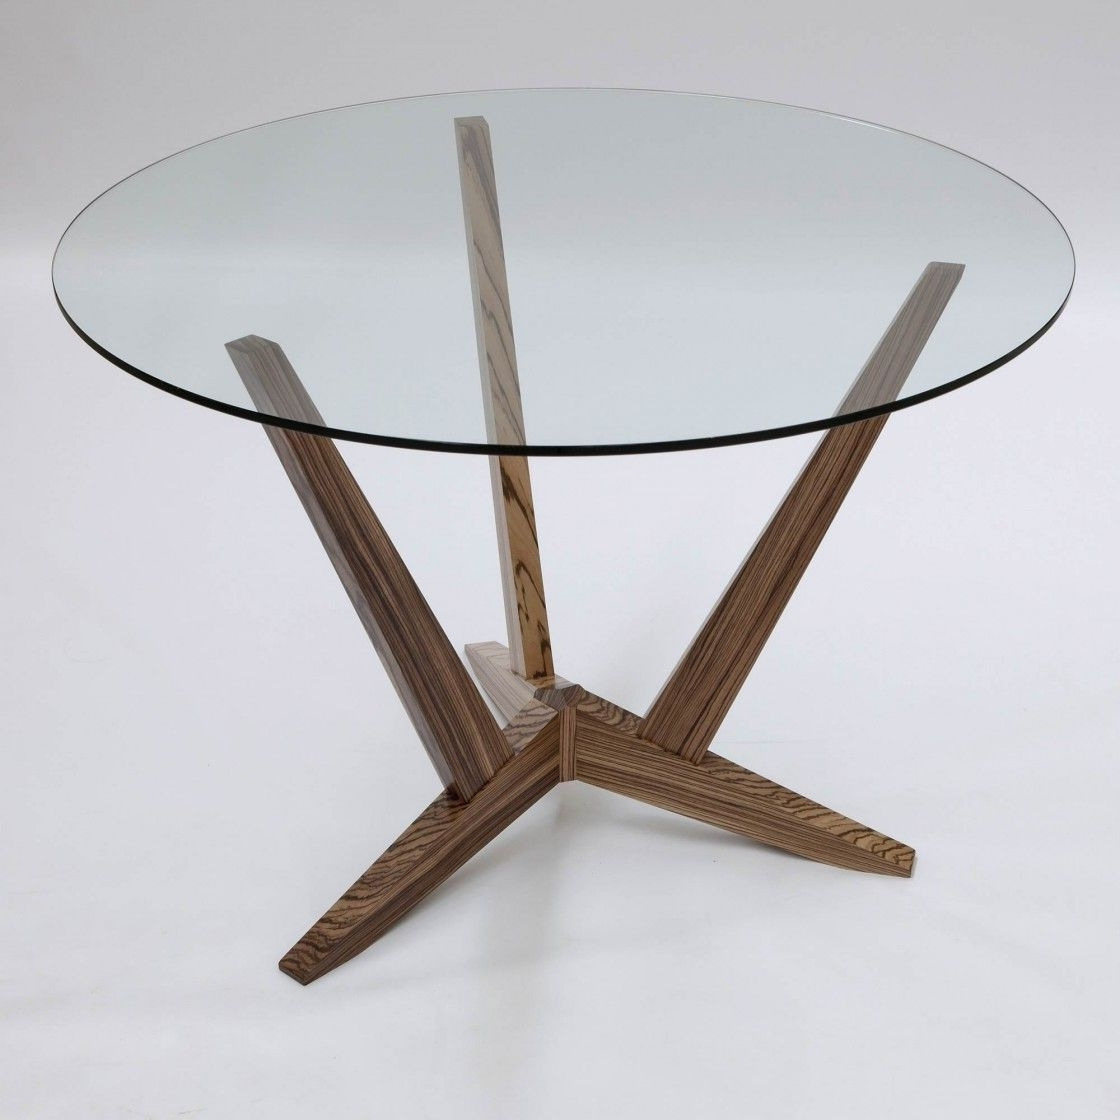 Best And Newest Simple Round Glass Dining Table With Walnut Wood Legs, Inexpensive Regarding Glass Dining Tables With Wooden Legs (Gallery 24 of 25)